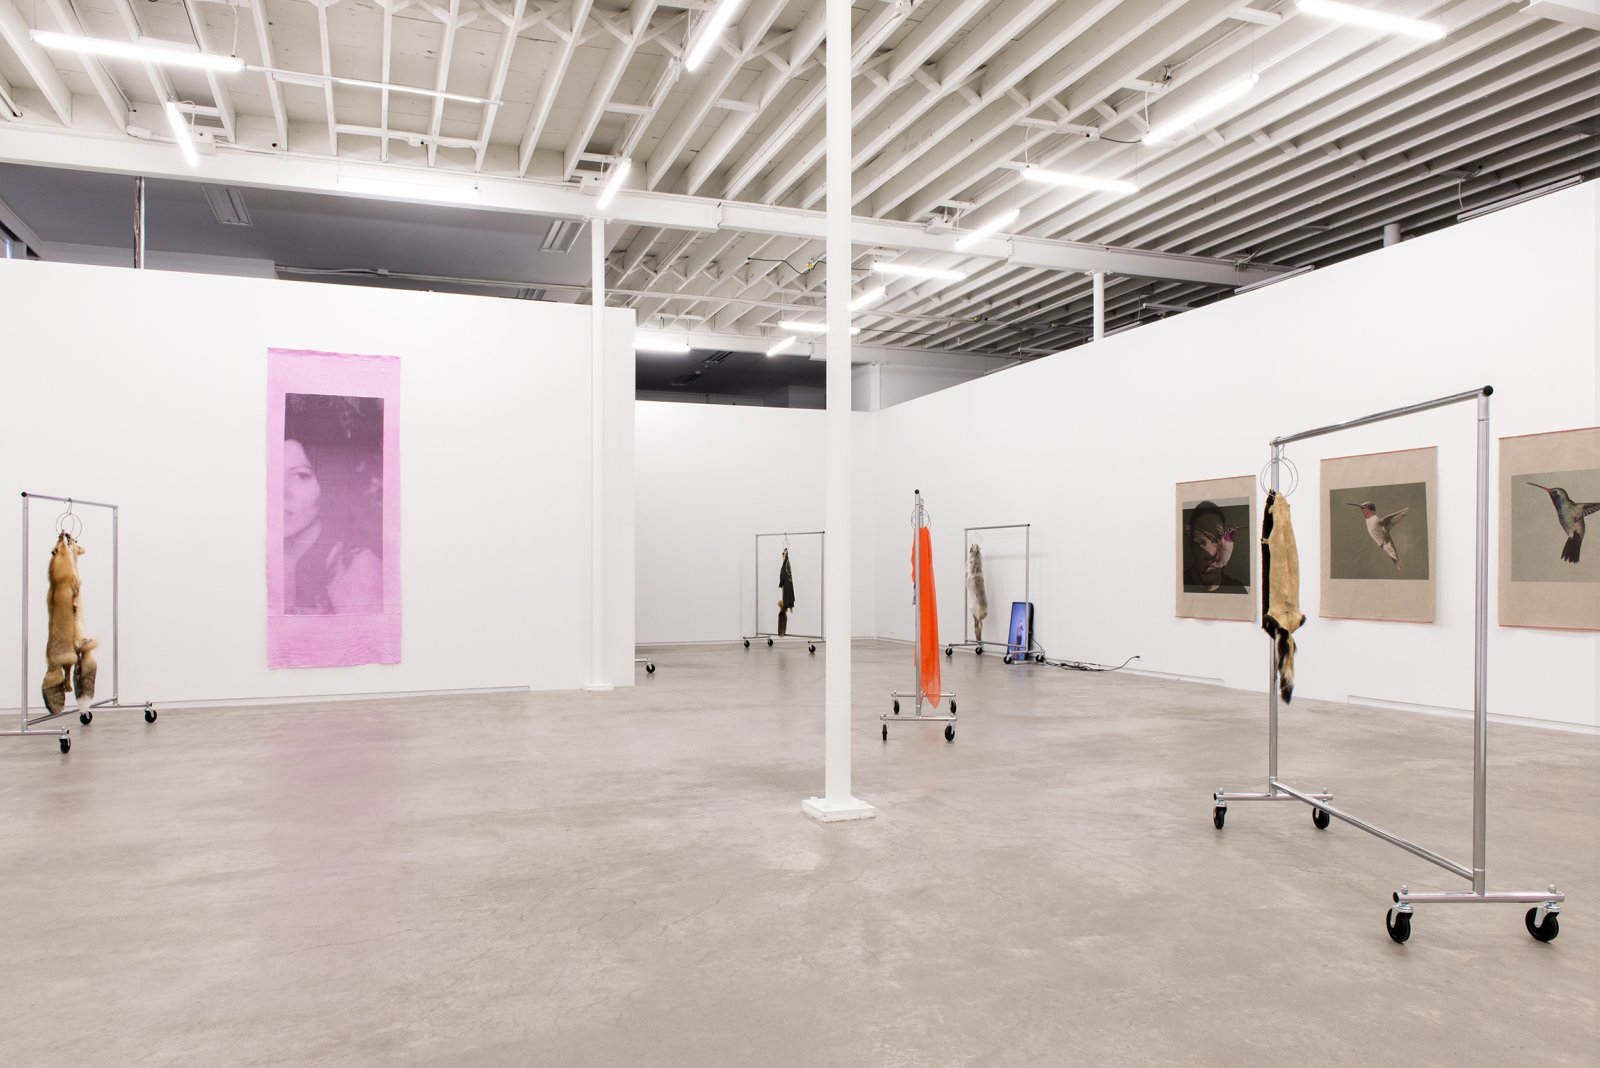 ​Duane Linklater, installation view, But the sun is up and you're going?, Catriona Jeffries, 2014​ by Duane Linklater